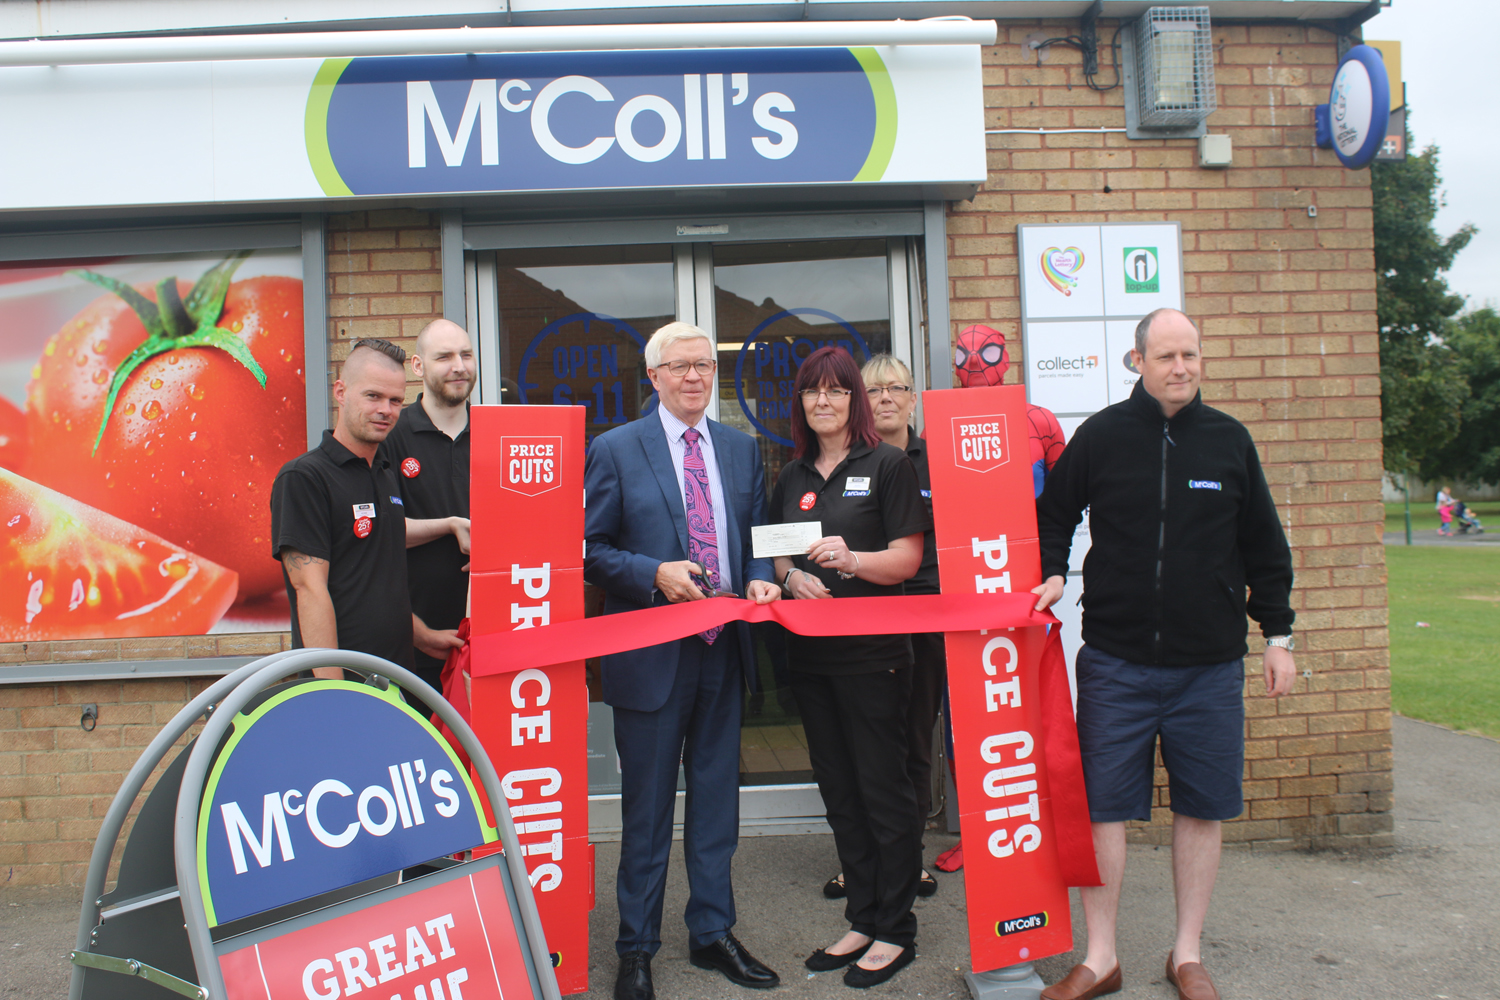 McColl's Relaunch with £500 to MRI